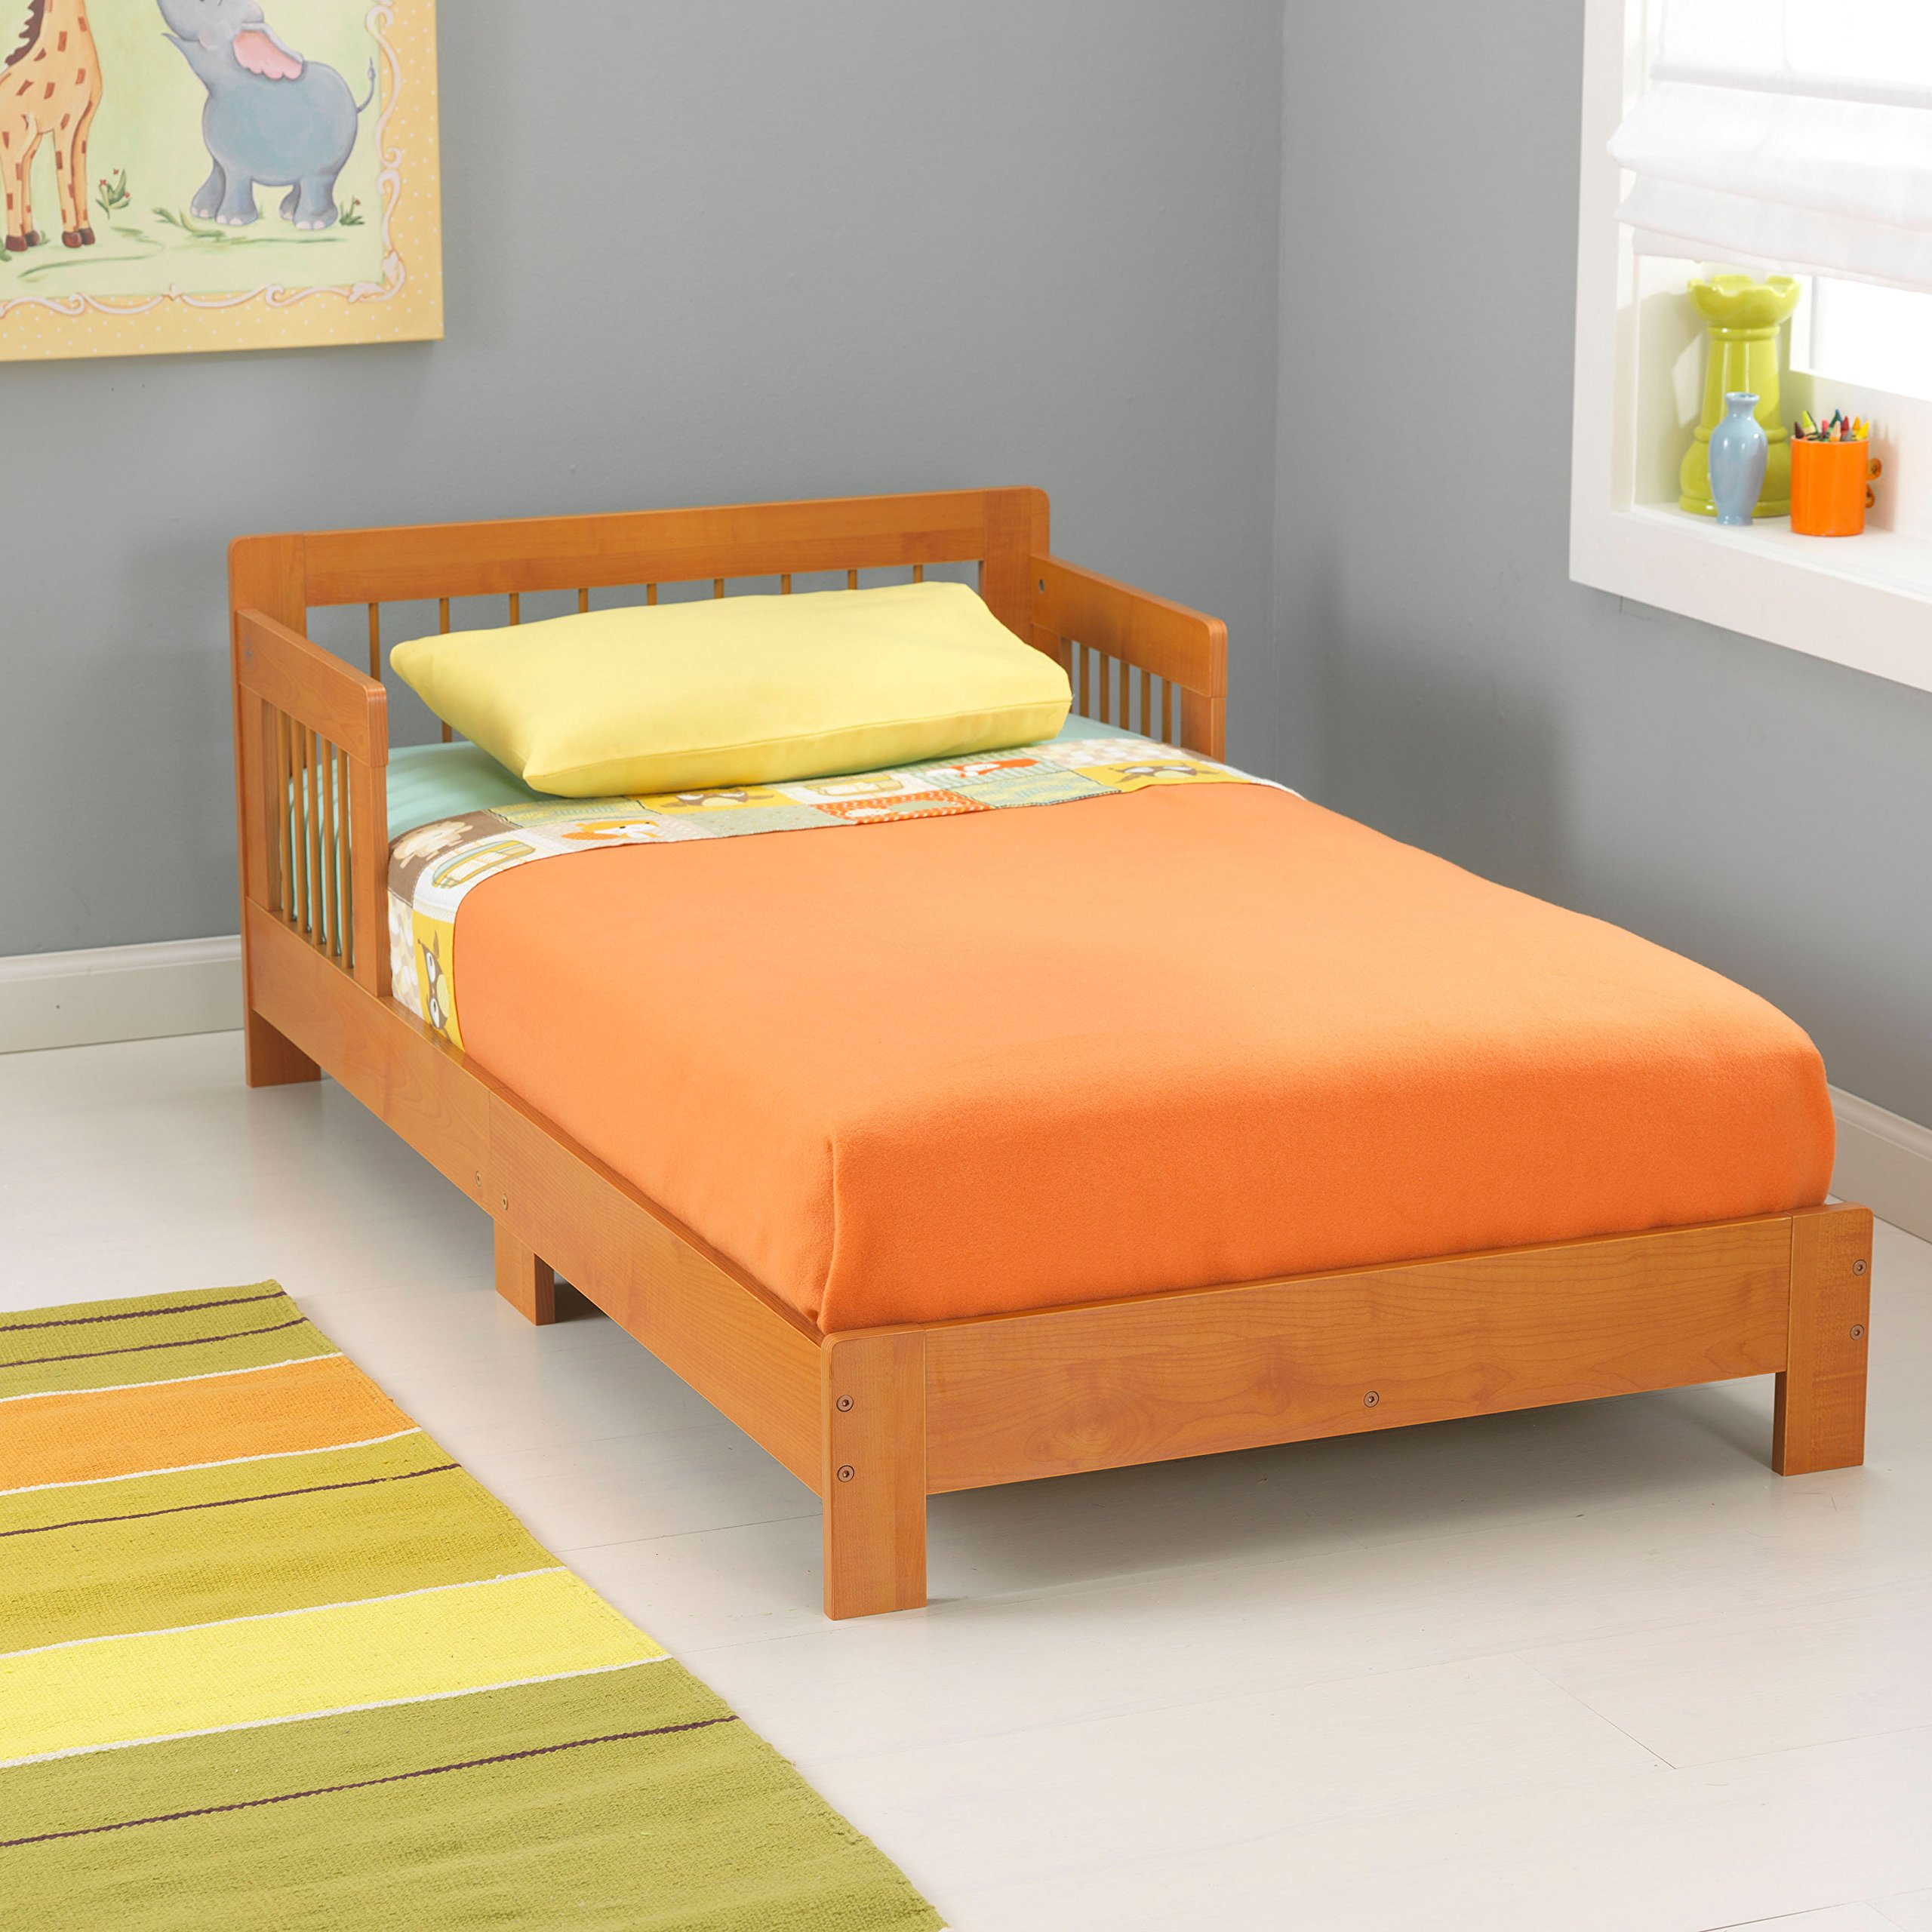 KidKraft Toddler Houston Bed, Honey by KidKraft